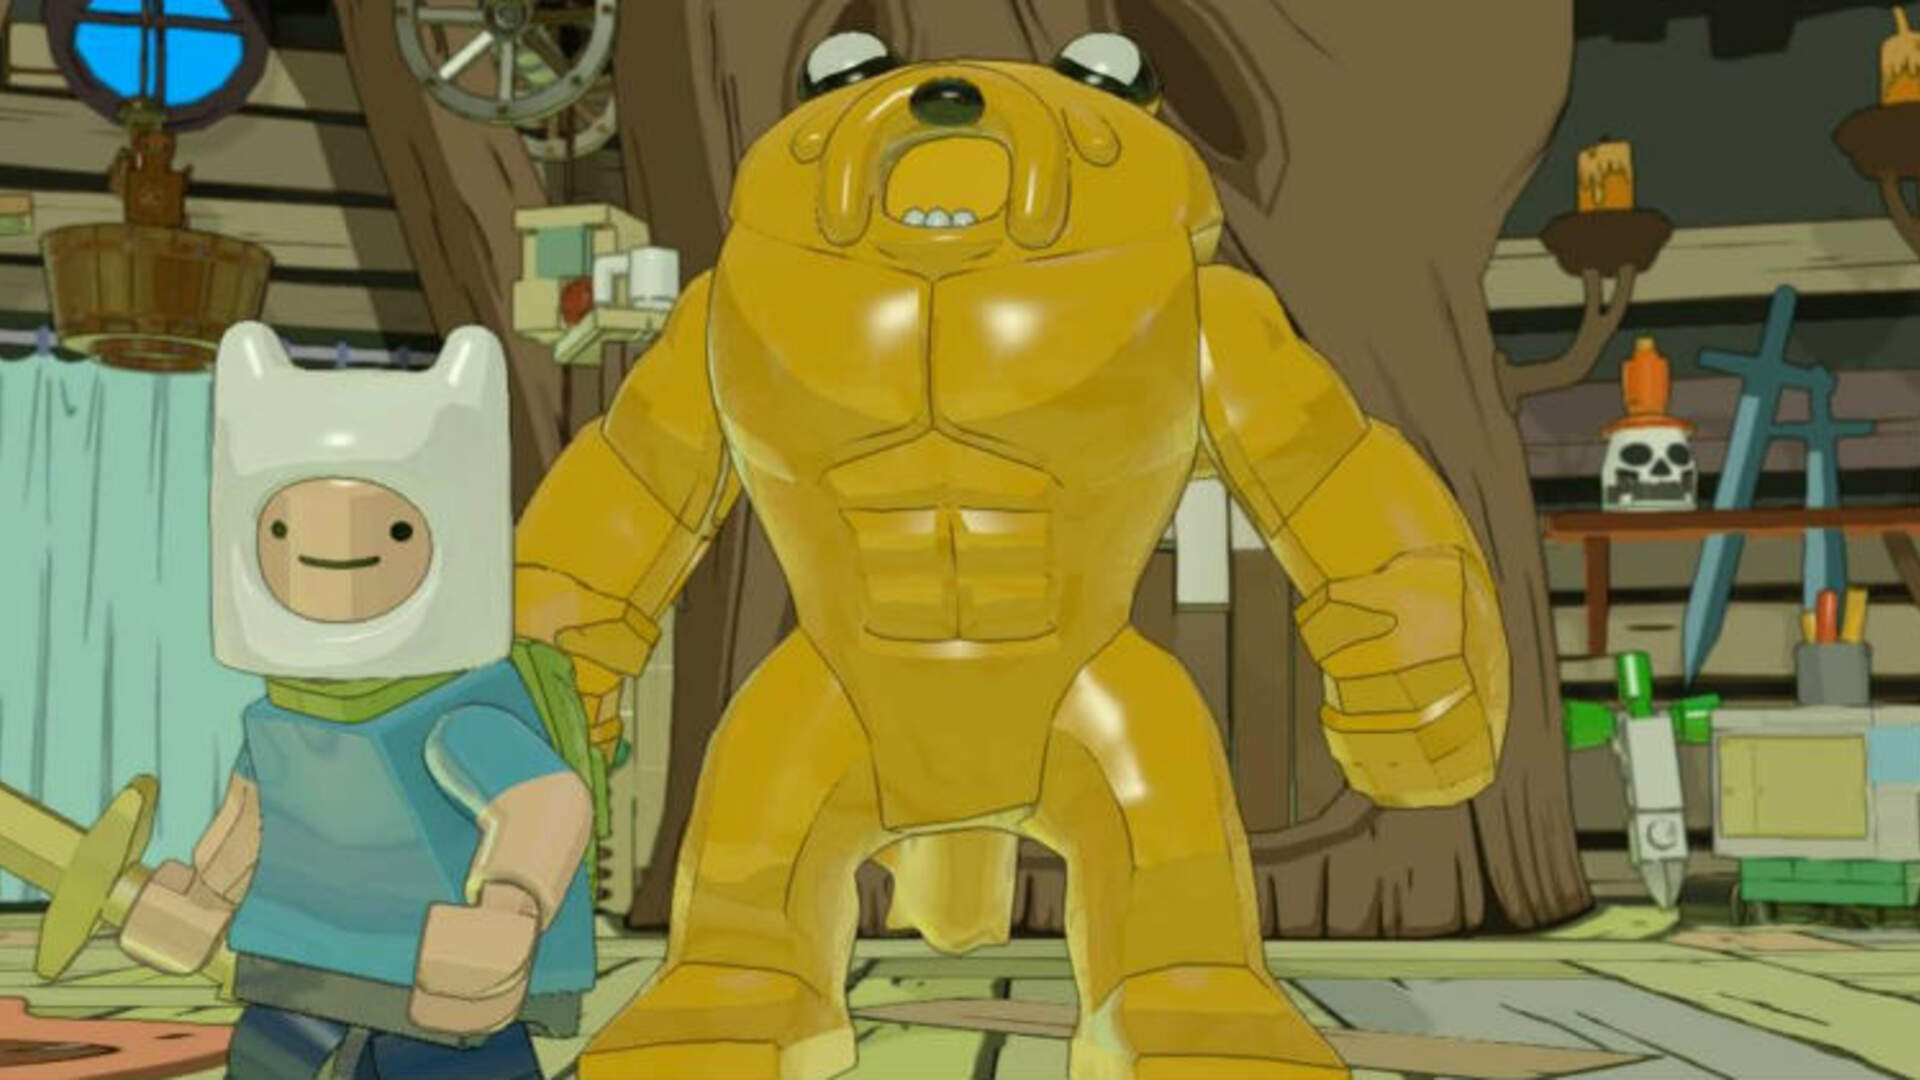 LEGO Dimensions Adventure Time: How to Earn Lots of Studs